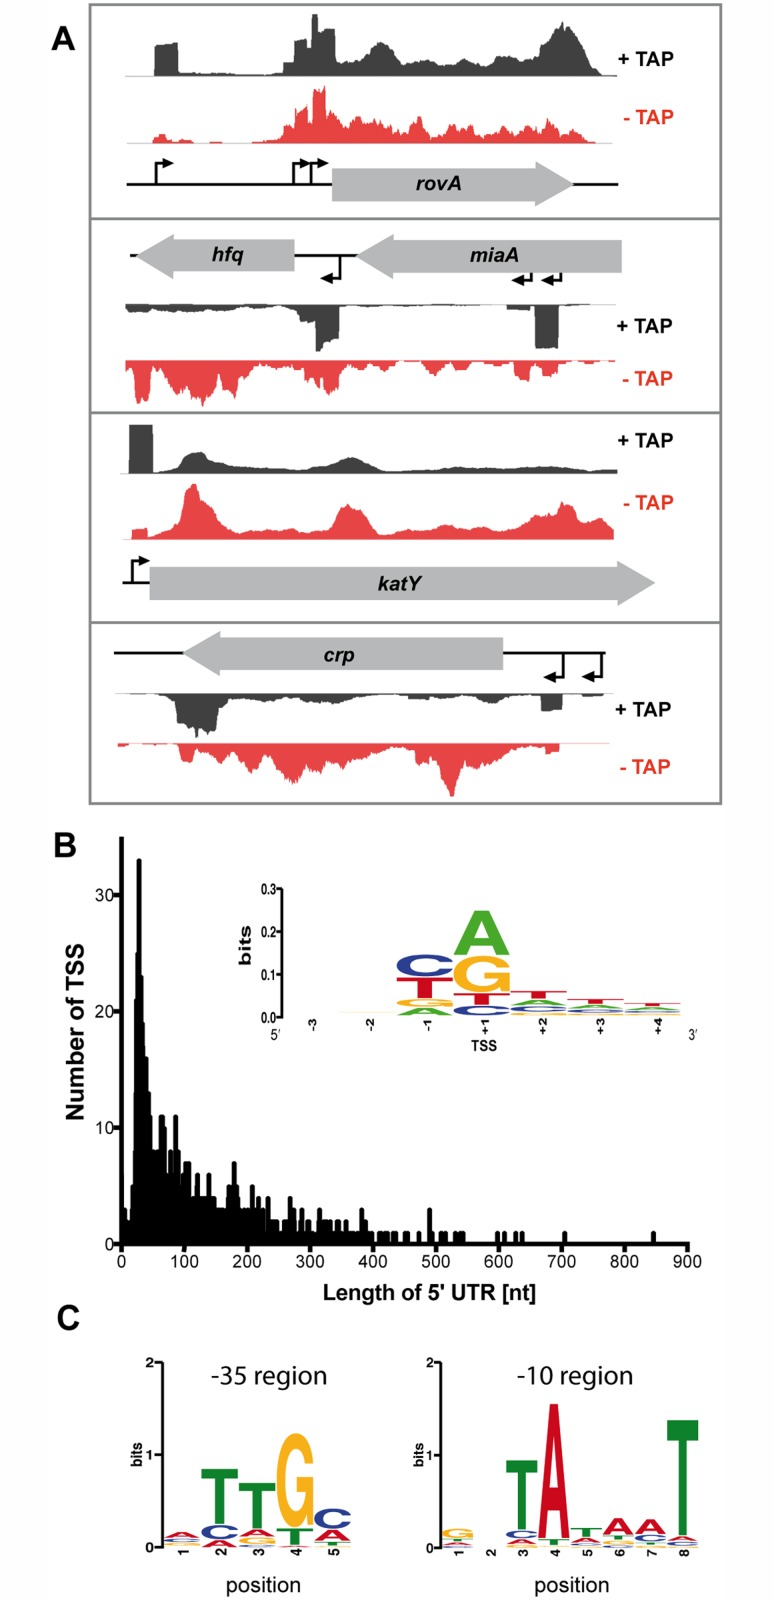 Global identification of mRNA transcriptional start sites (TSSs). (A) Visualization of RNA-seq (+/- TAP) based cDNA sequencing reads mapped to the YPIII rovA , hfq , katY and crp gene locus using the Artemis genome browser (Release 15.0.0). (B) The 5'-UTR repertoire. The distribution and frequency of the length of 5'-UTRs is given for all mRNAs of YPIII which start upstream of the annotated translational start site. More than 40% of all 5'-UTRs are 20–60 nt in length. (Inset) Sequence conservation at the TSSs. Sequence logo computed from 1151 unaligned TSS regions (TSS is located at position +1) showing nucleotide conservation around the TSSs. The initial nucleotide of transcripts (position +1) is dominated by purines while position -1 is dominated by pyrimidines. (C) Detected conserved sequence motifs in the -35 and -10 promotor region.